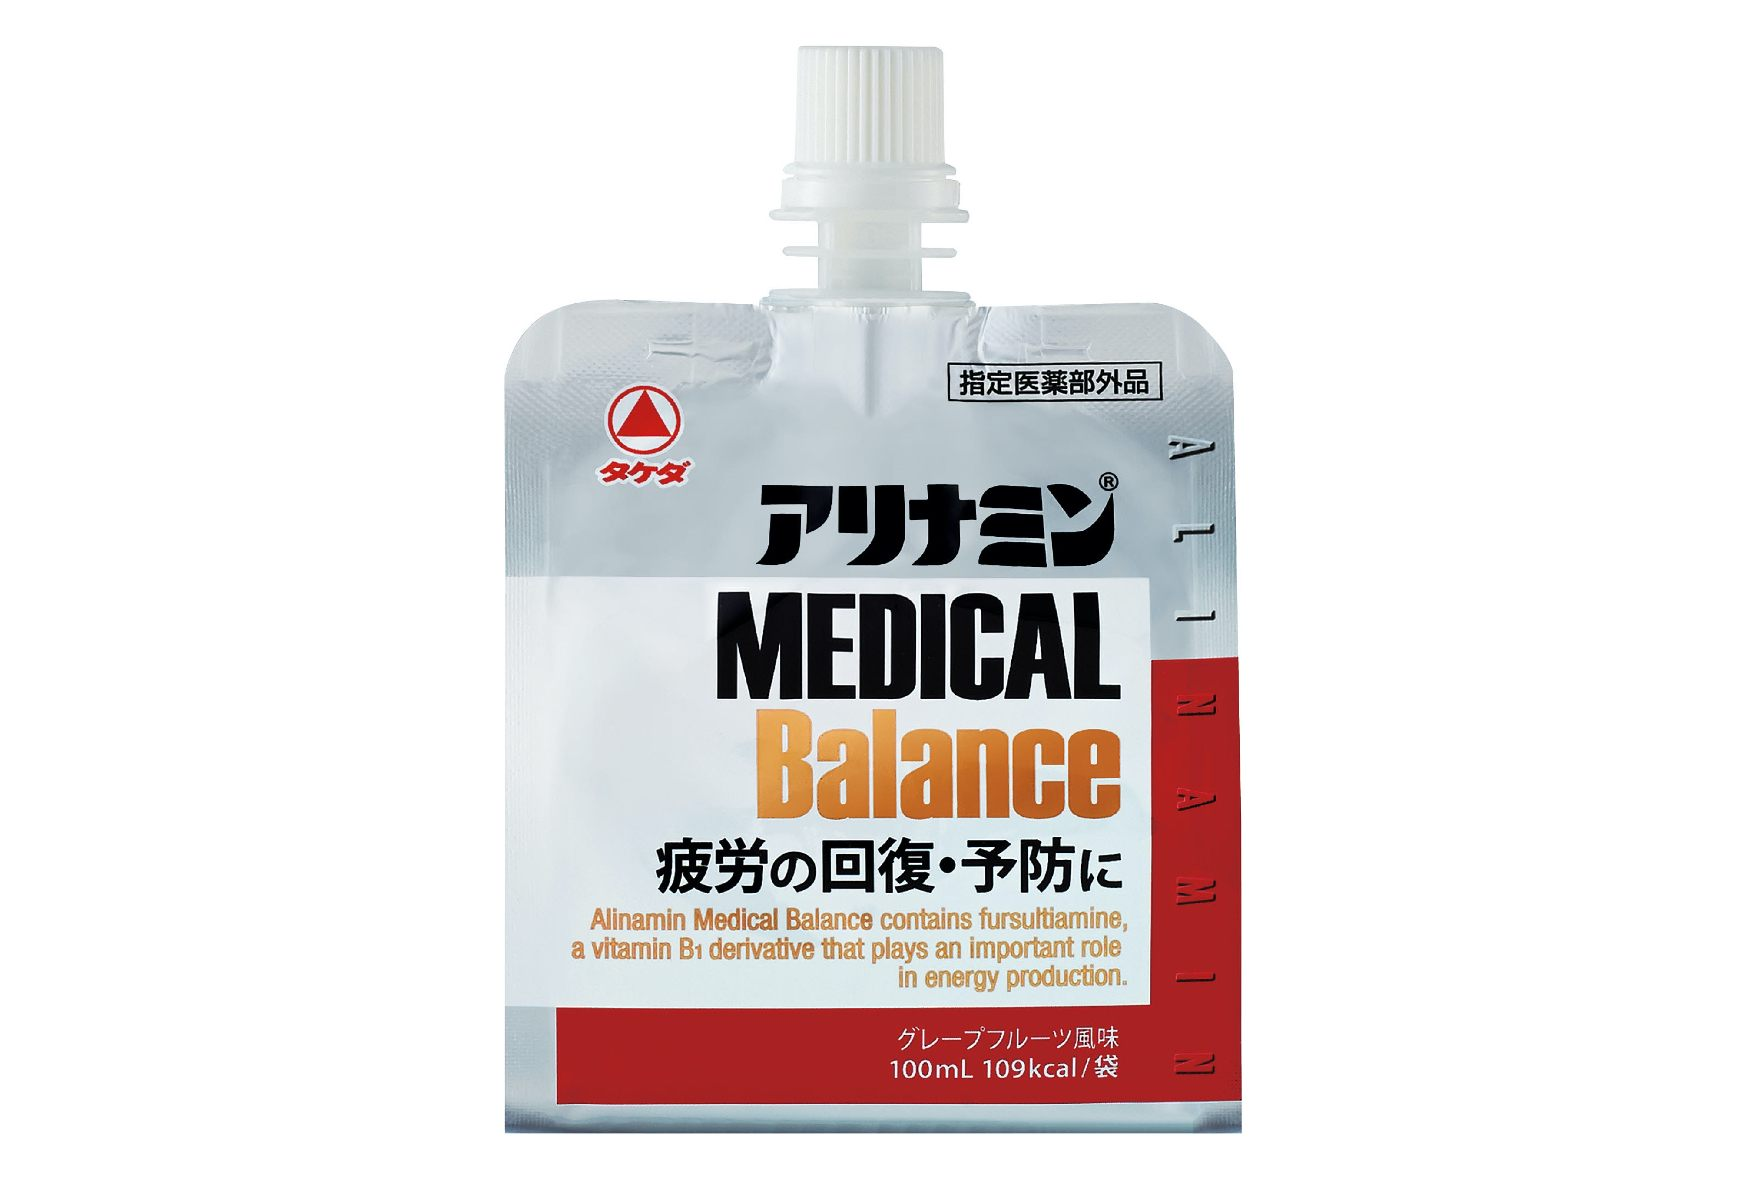 Alinamin Medical Balance (Designated Quasi-Drugs), Recovery and prevention of fatigue during travel.